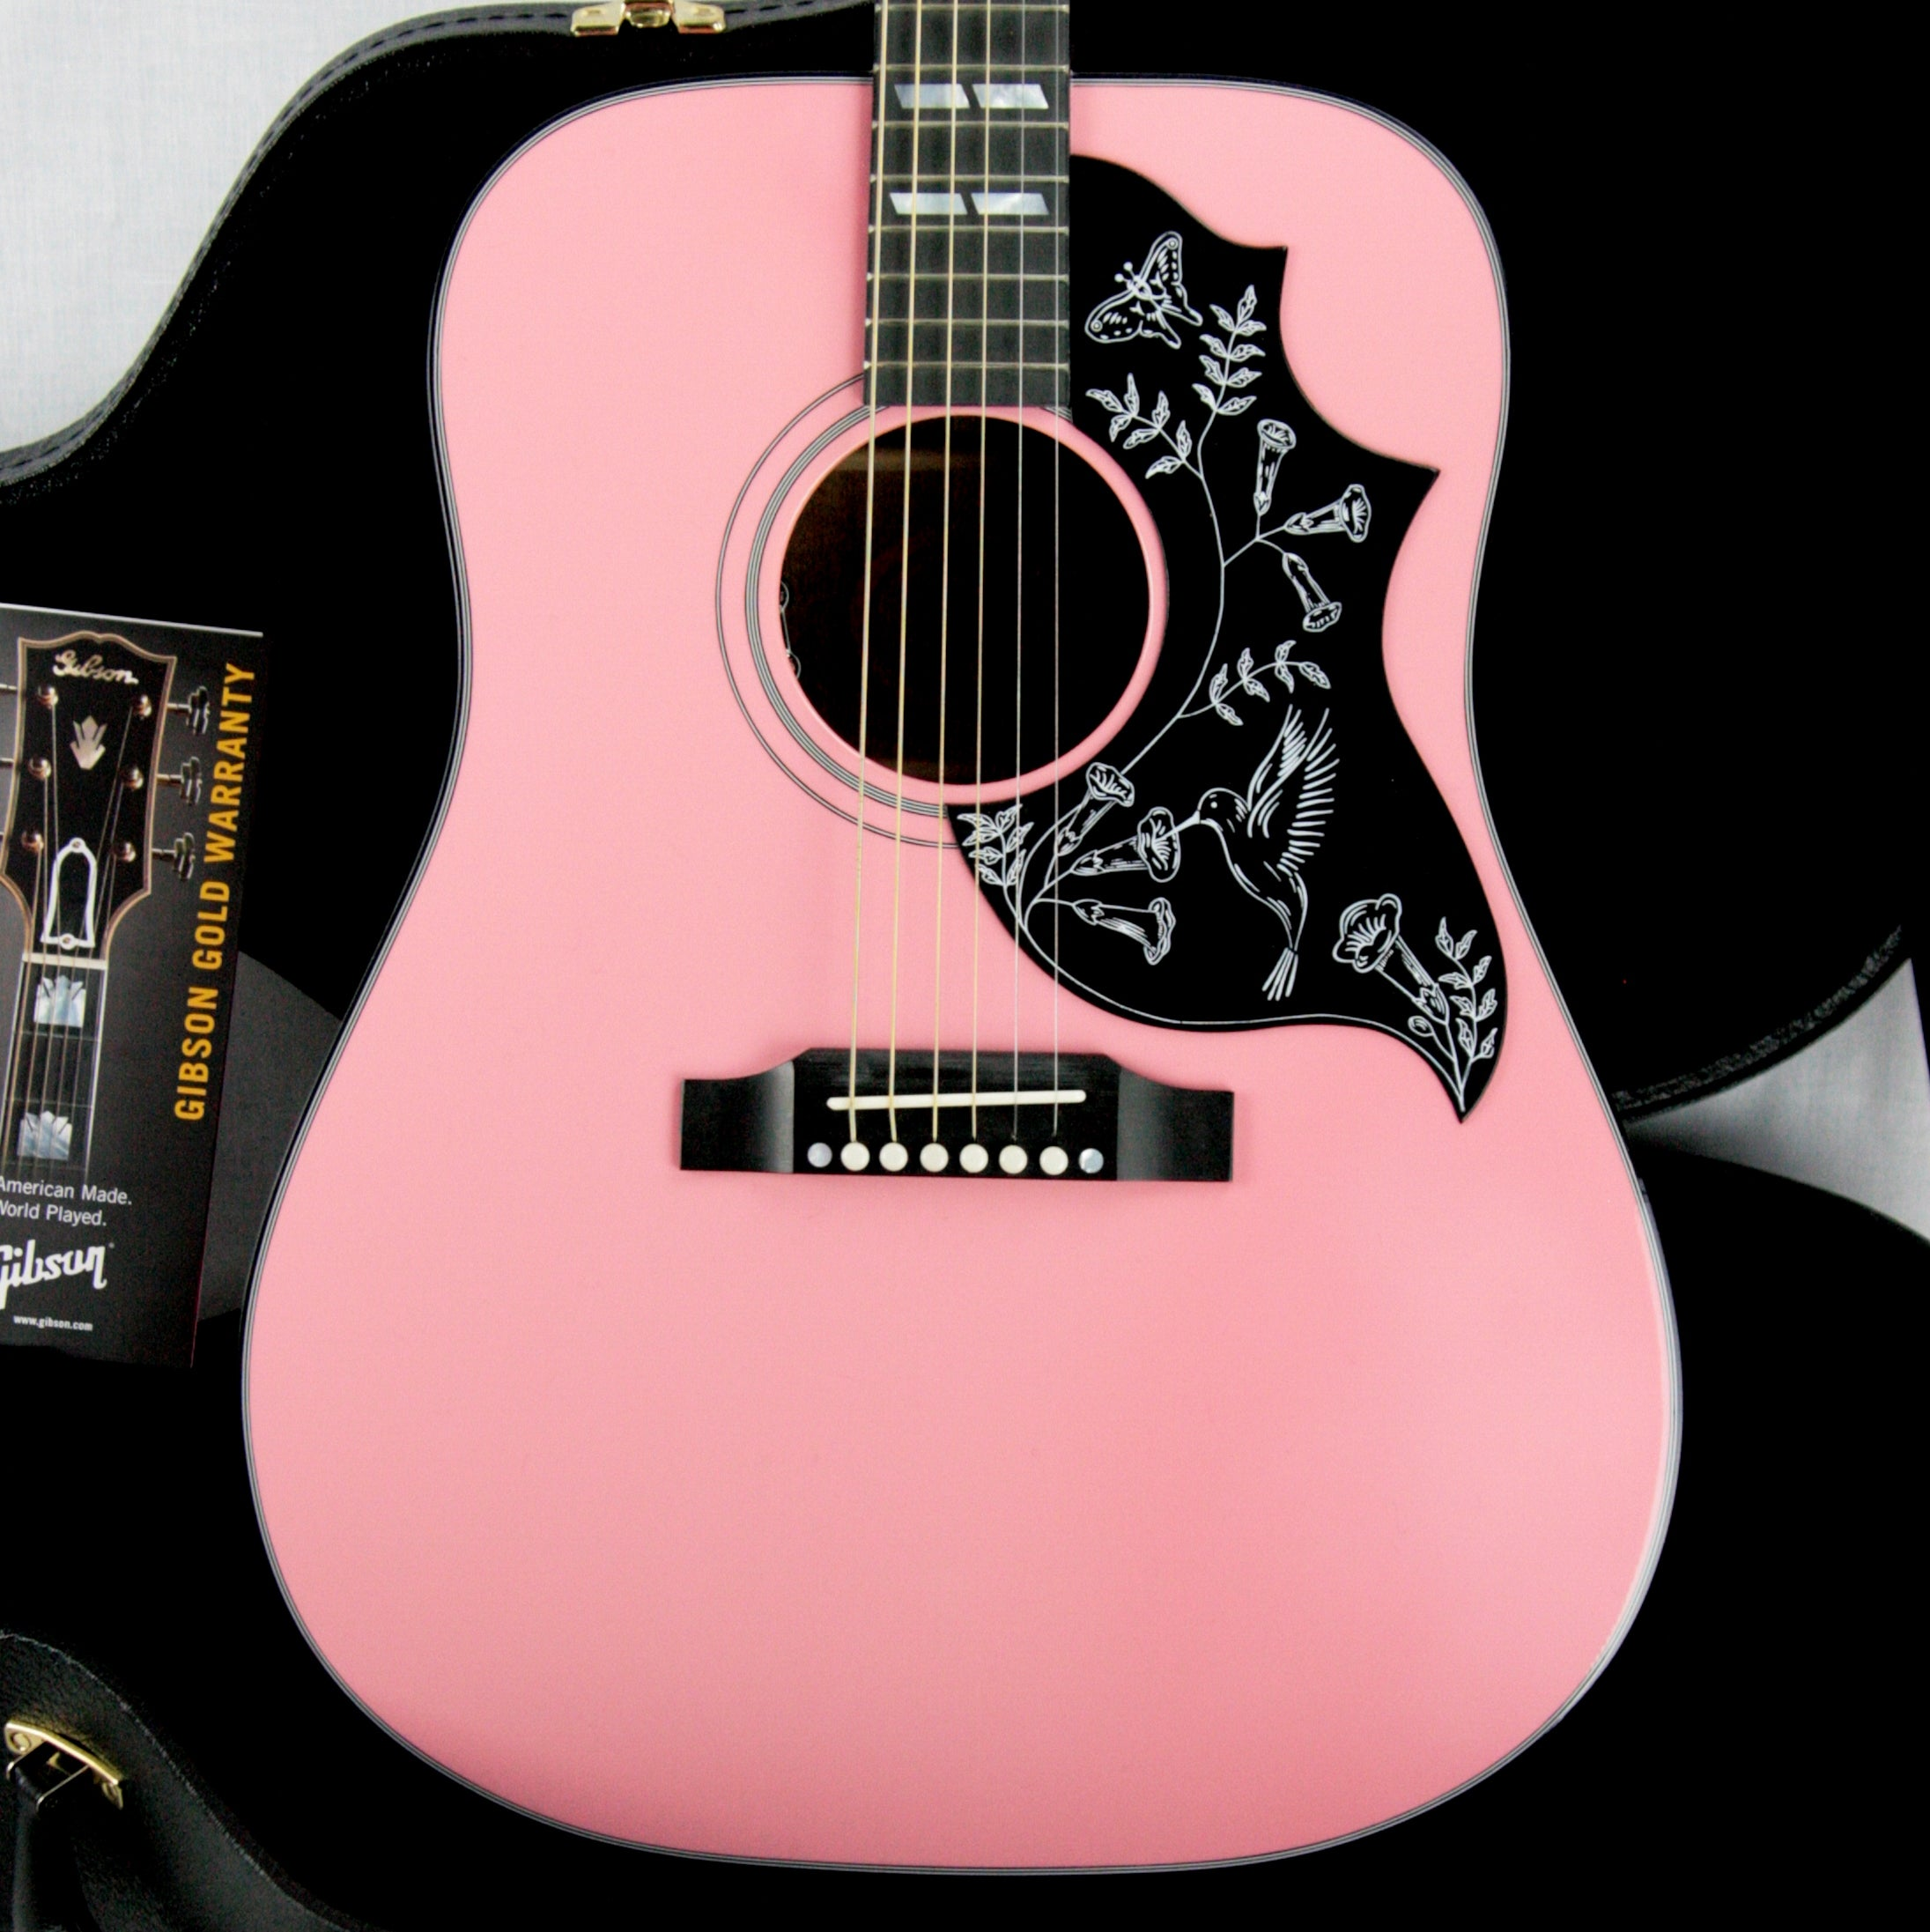 2017 Gibson Montana TECHNO PINK HUMMINGBIRD! Limited Edition Acoustic Guitar! j45 dove